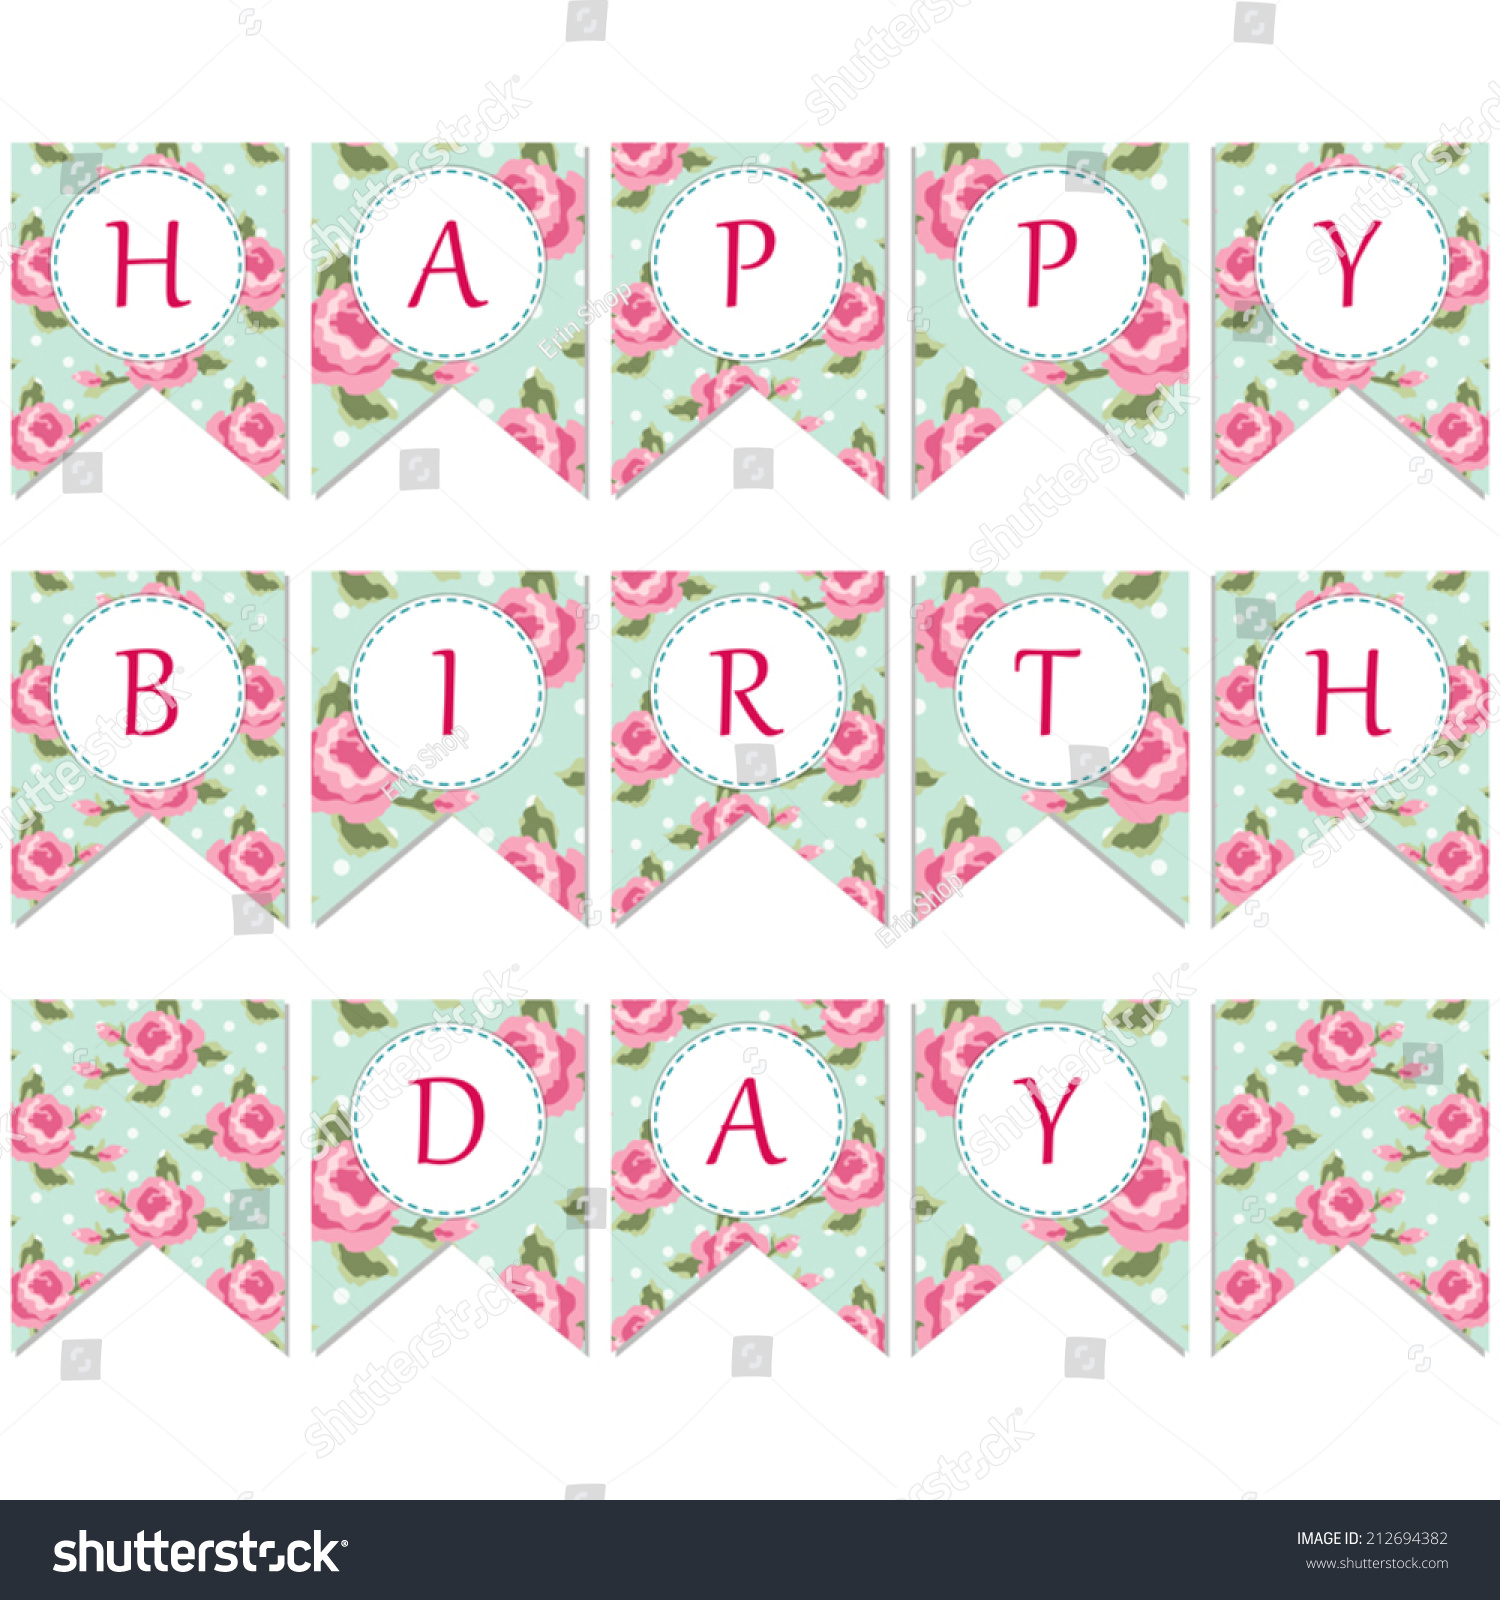 Vector bunting flags lovely celebration card with colorful paper - Festive Vintage Bunting Flags With Roses In Shabby Chic Style